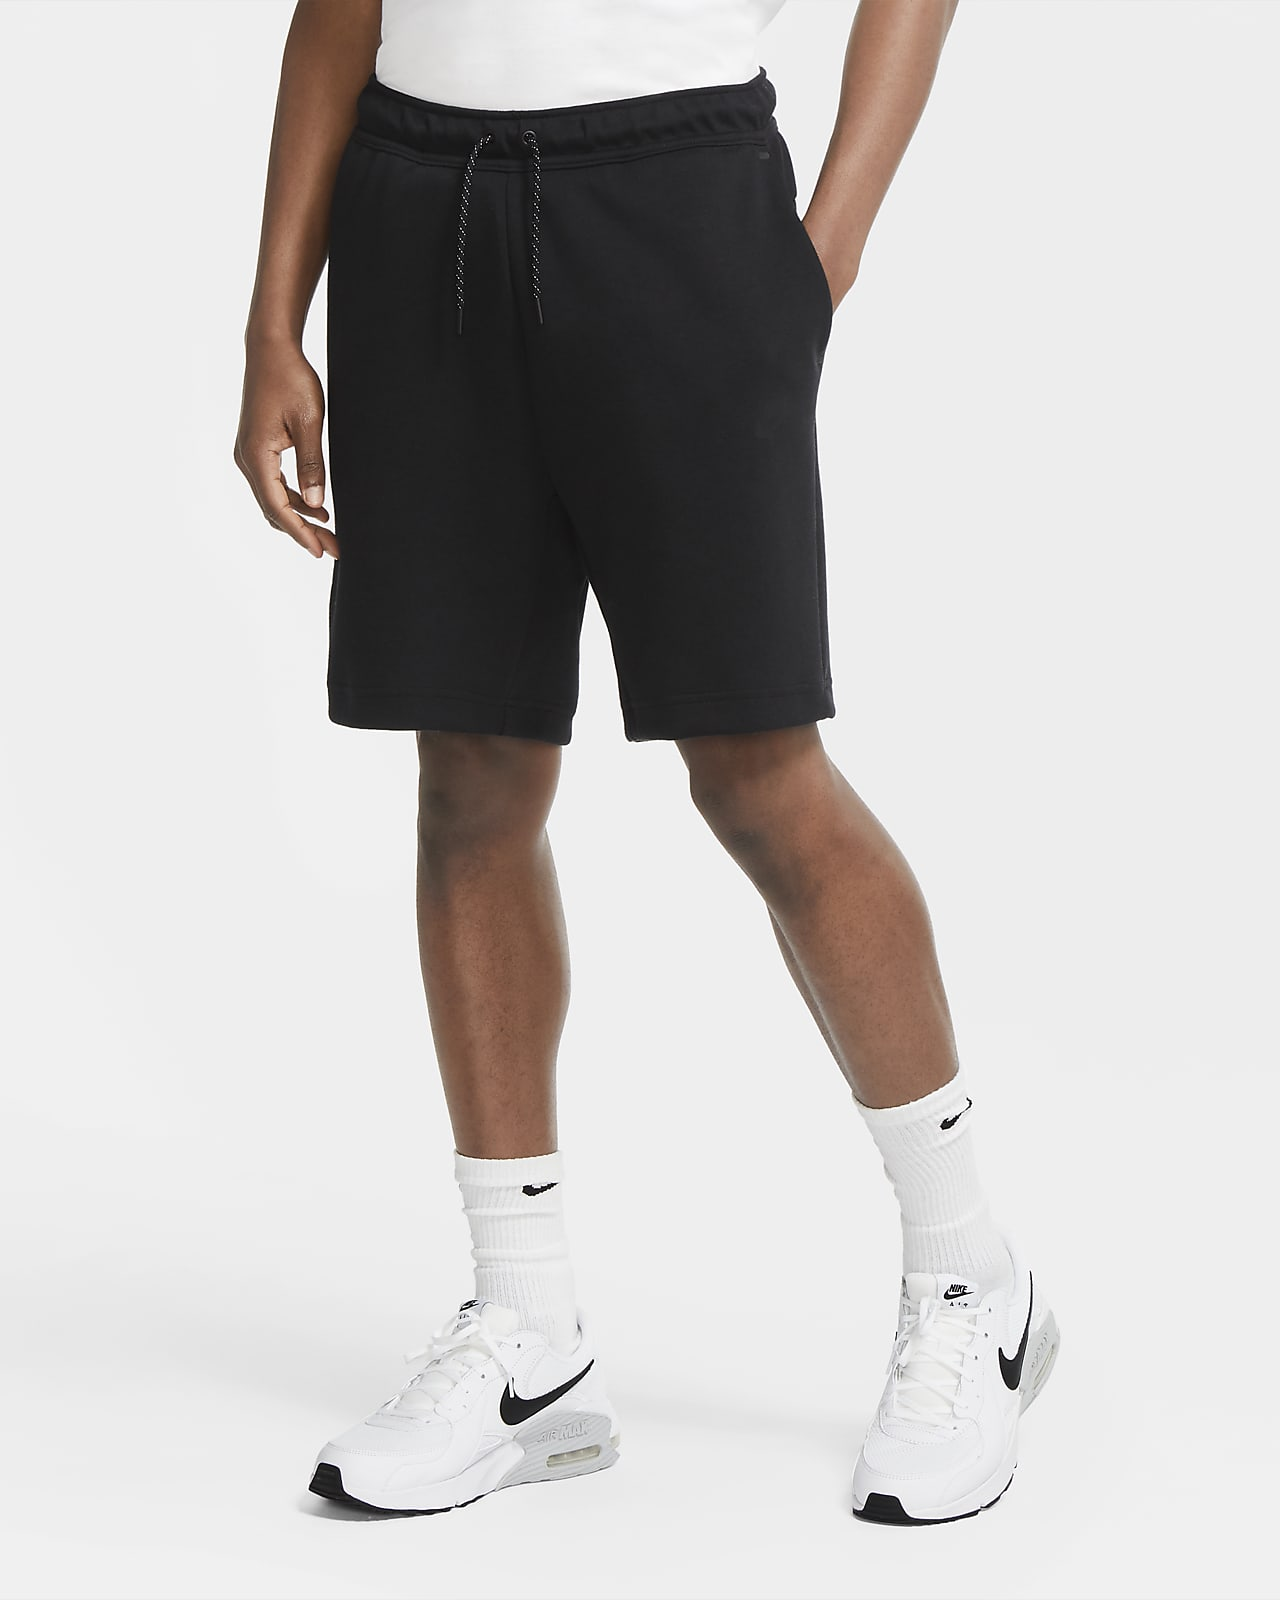 Shorts para hombre Nike Sportswear Tech Fleece